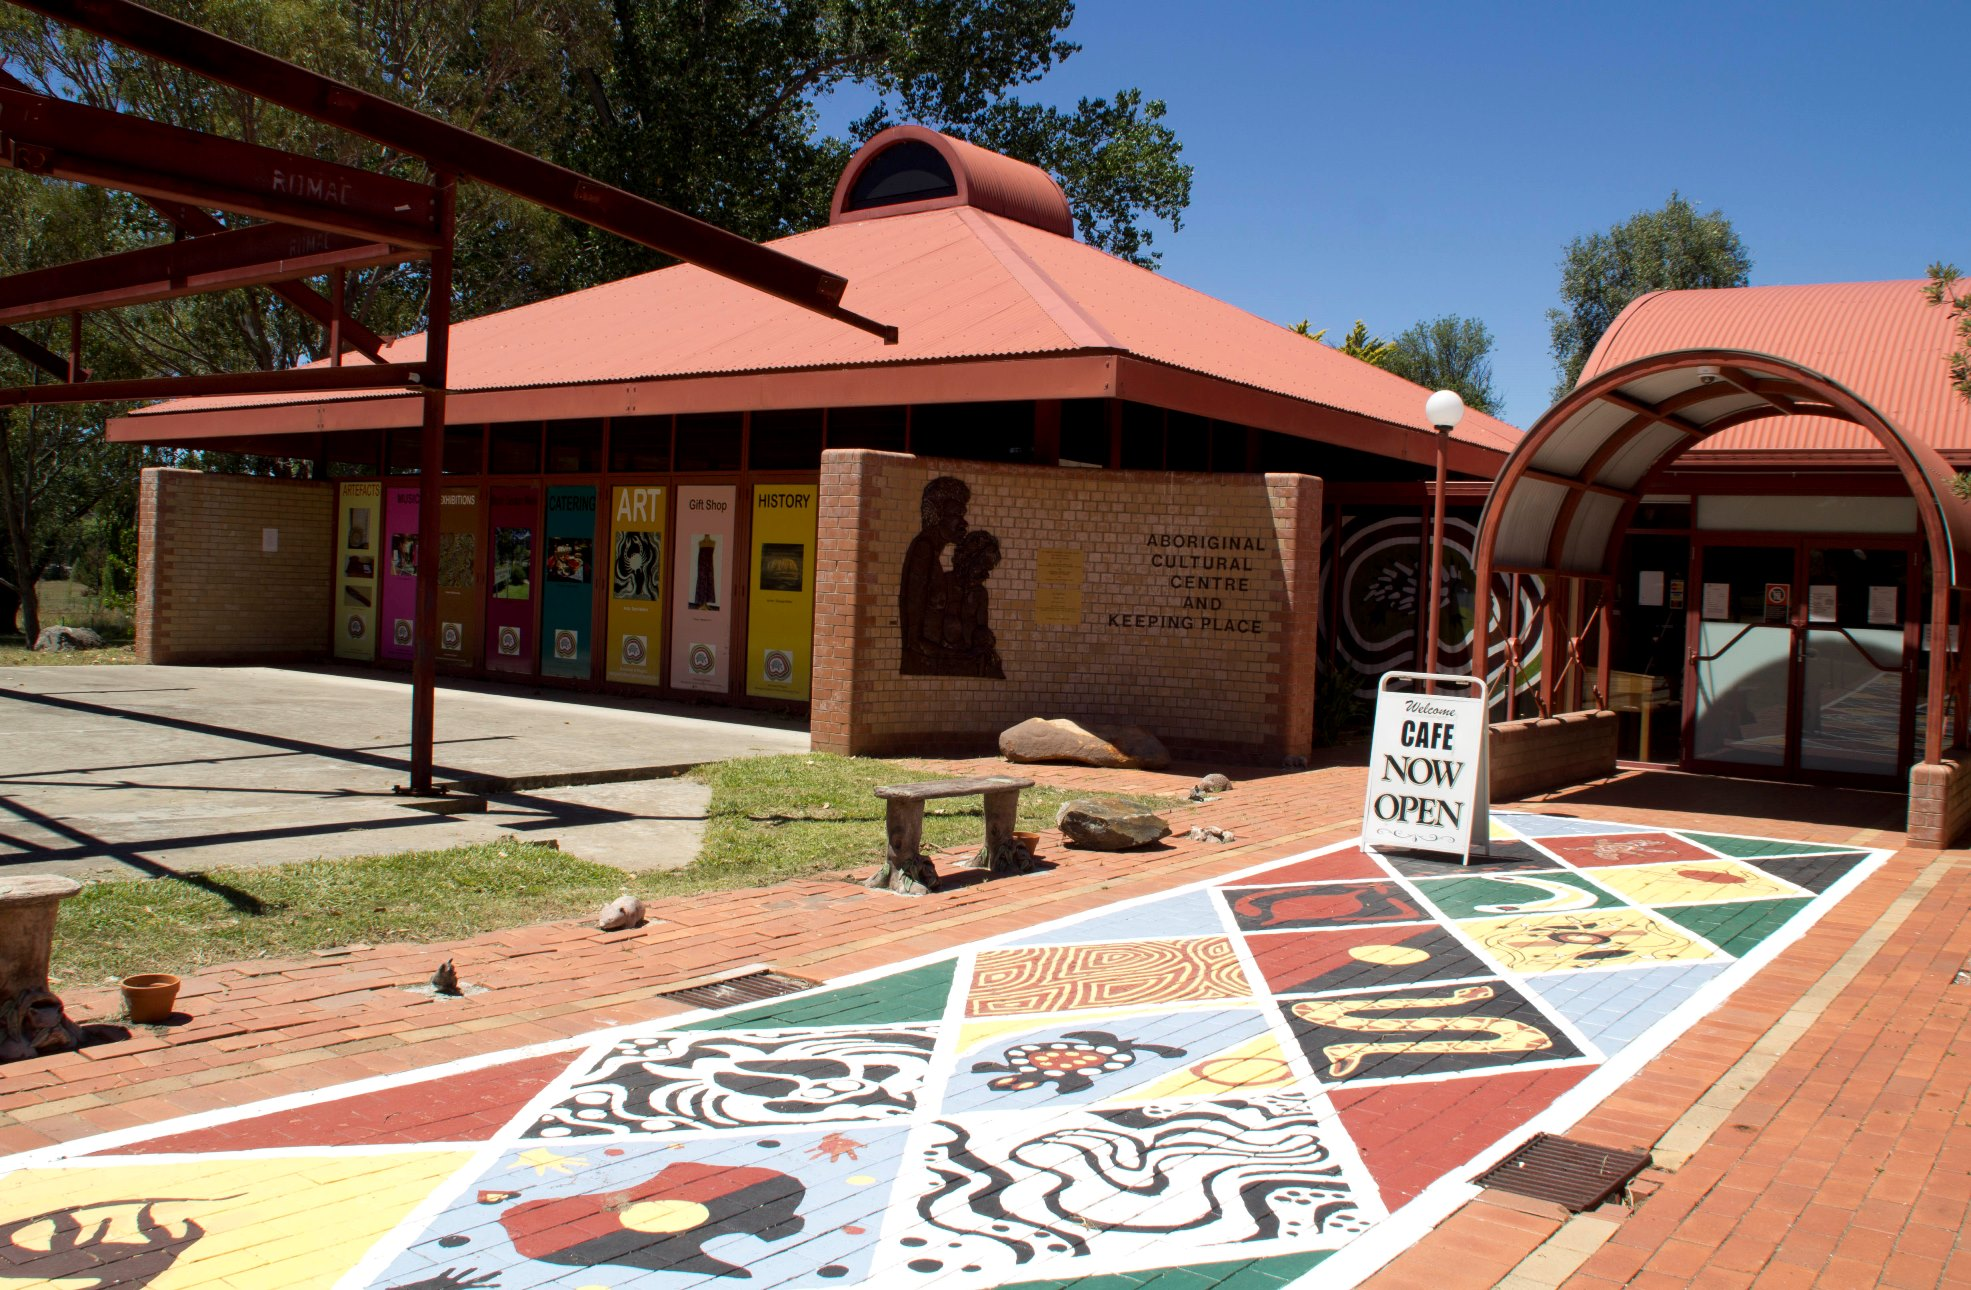 Copy of Aboriginal Cultural Centre and Keeping Place, Armidale